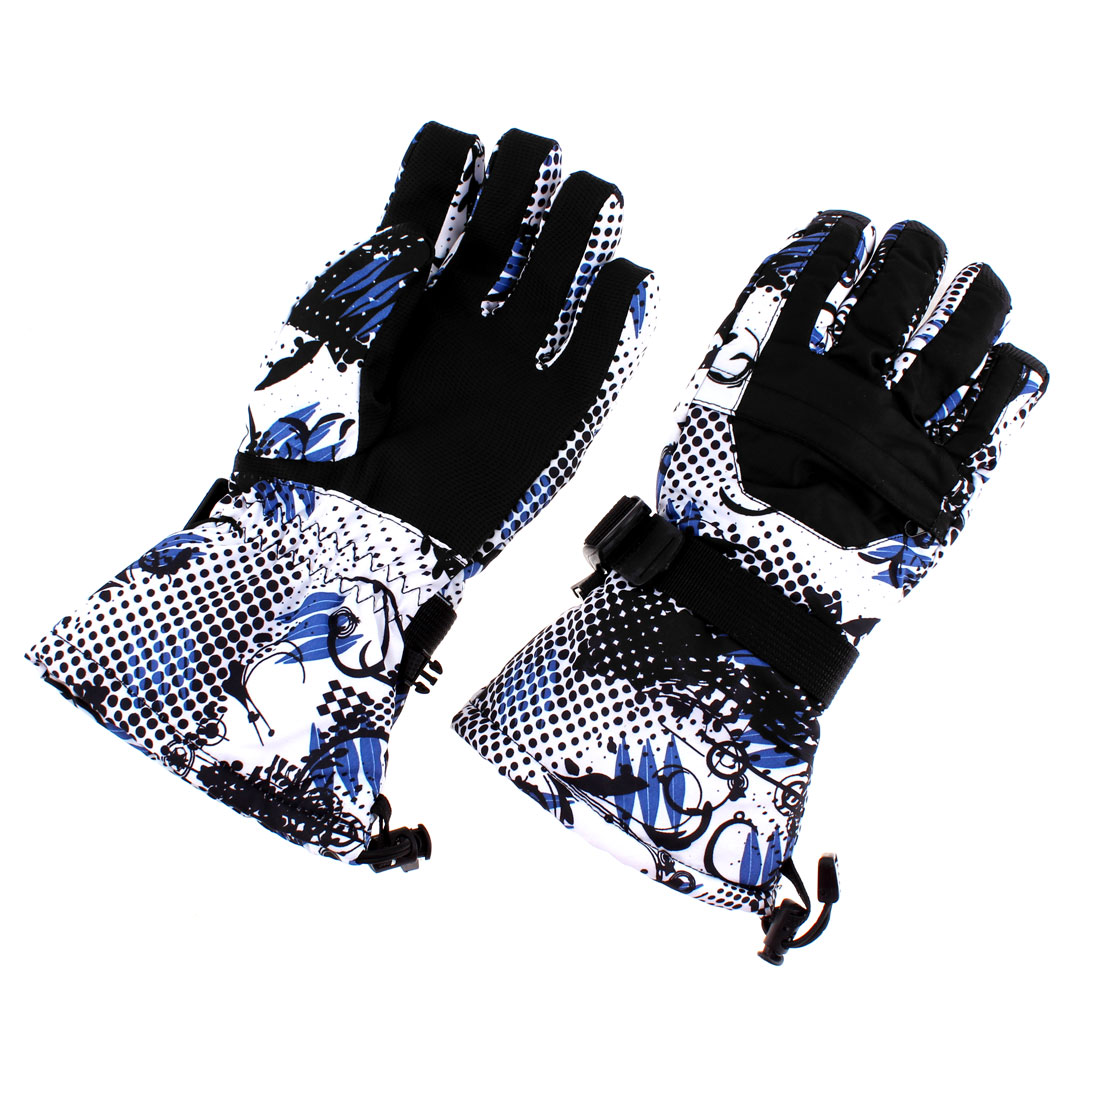 XL Winter Waterproof Worm Men Snow Skiing Full Finger Gloves Black Pair